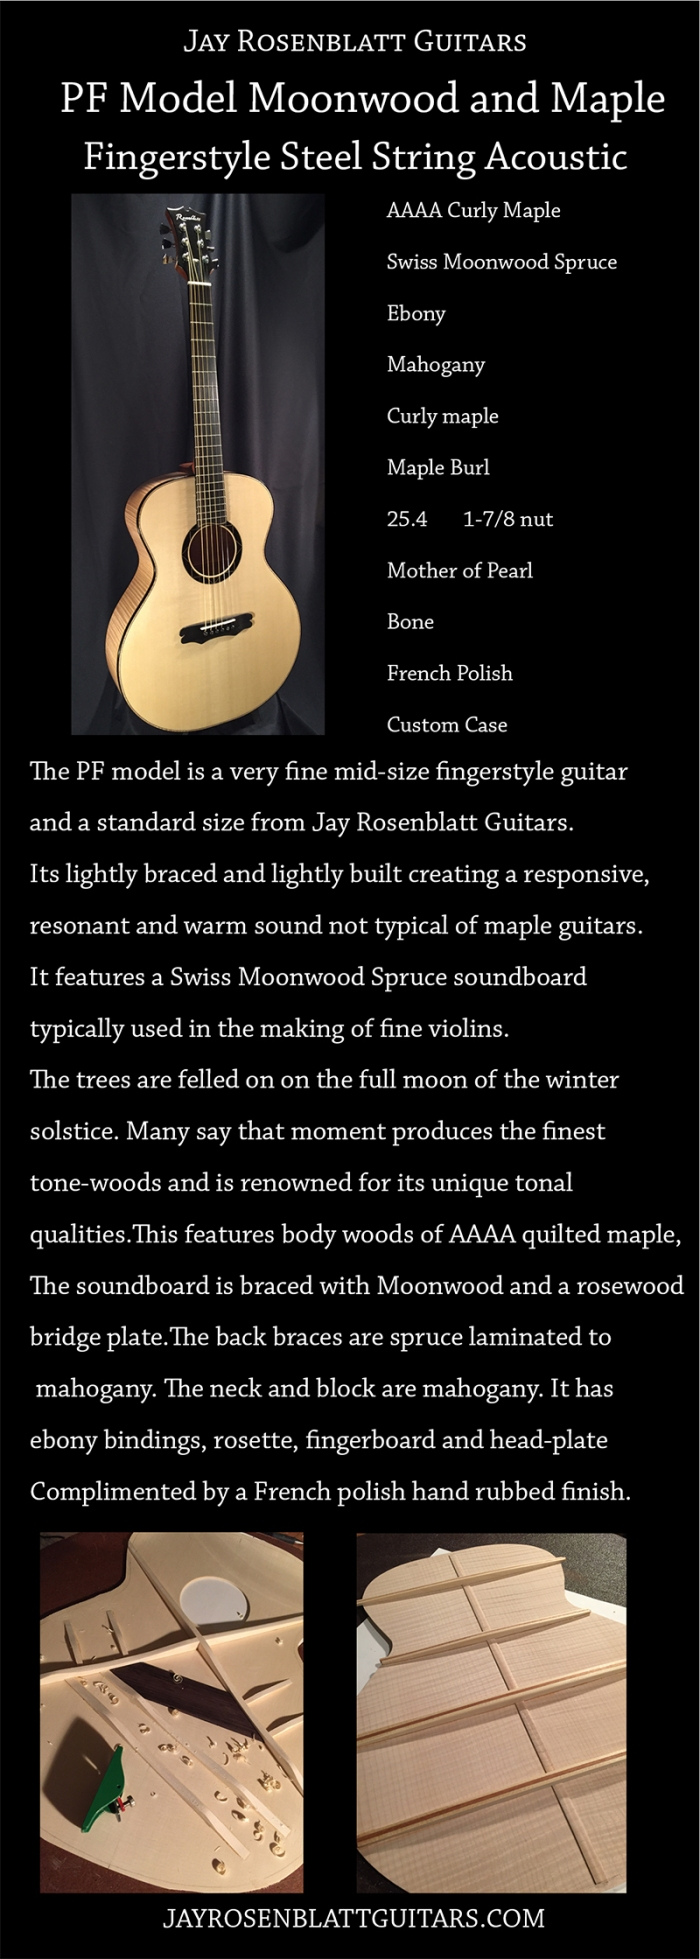 Jay Rosenblatt Guitar PF Model in Moonwood with maple and mahogany.